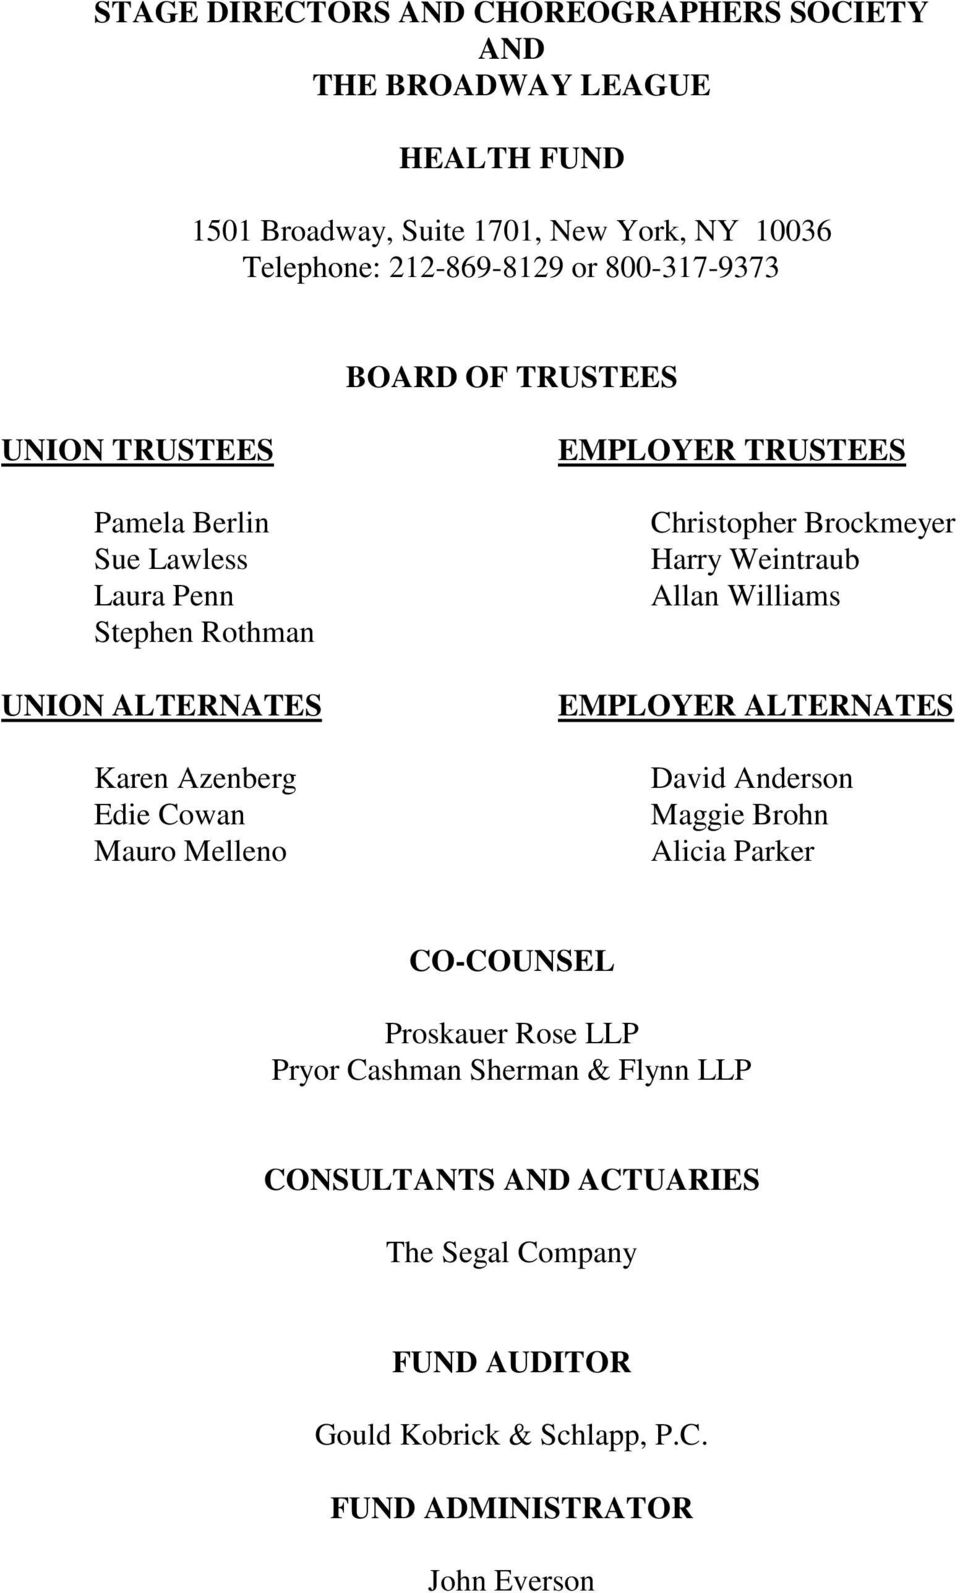 EMPLOYER TRUSTEES Christopher Brockmeyer Harry Weintraub Allan Williams EMPLOYER ALTERNATES David Anderson Maggie Brohn Alicia Parker CO-COUNSEL Proskauer